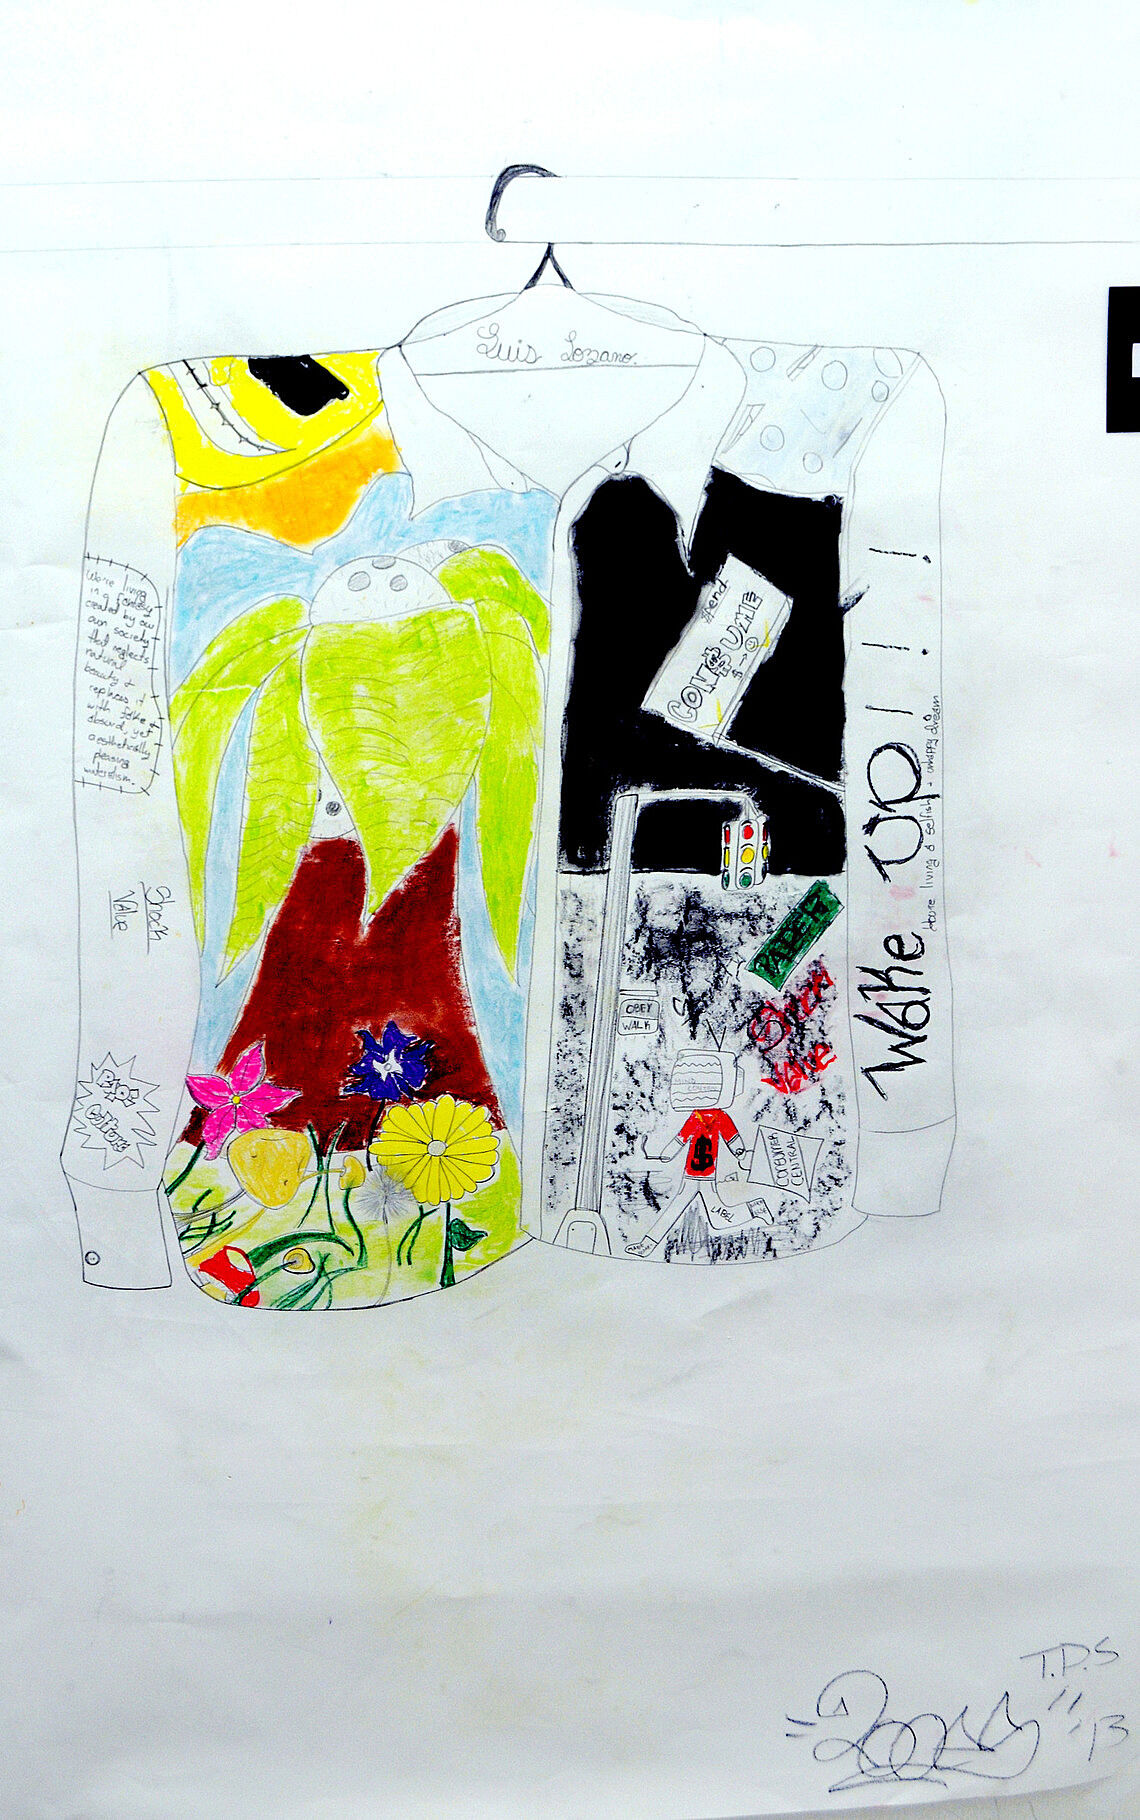 A drawing of a jacket with artwork on it.